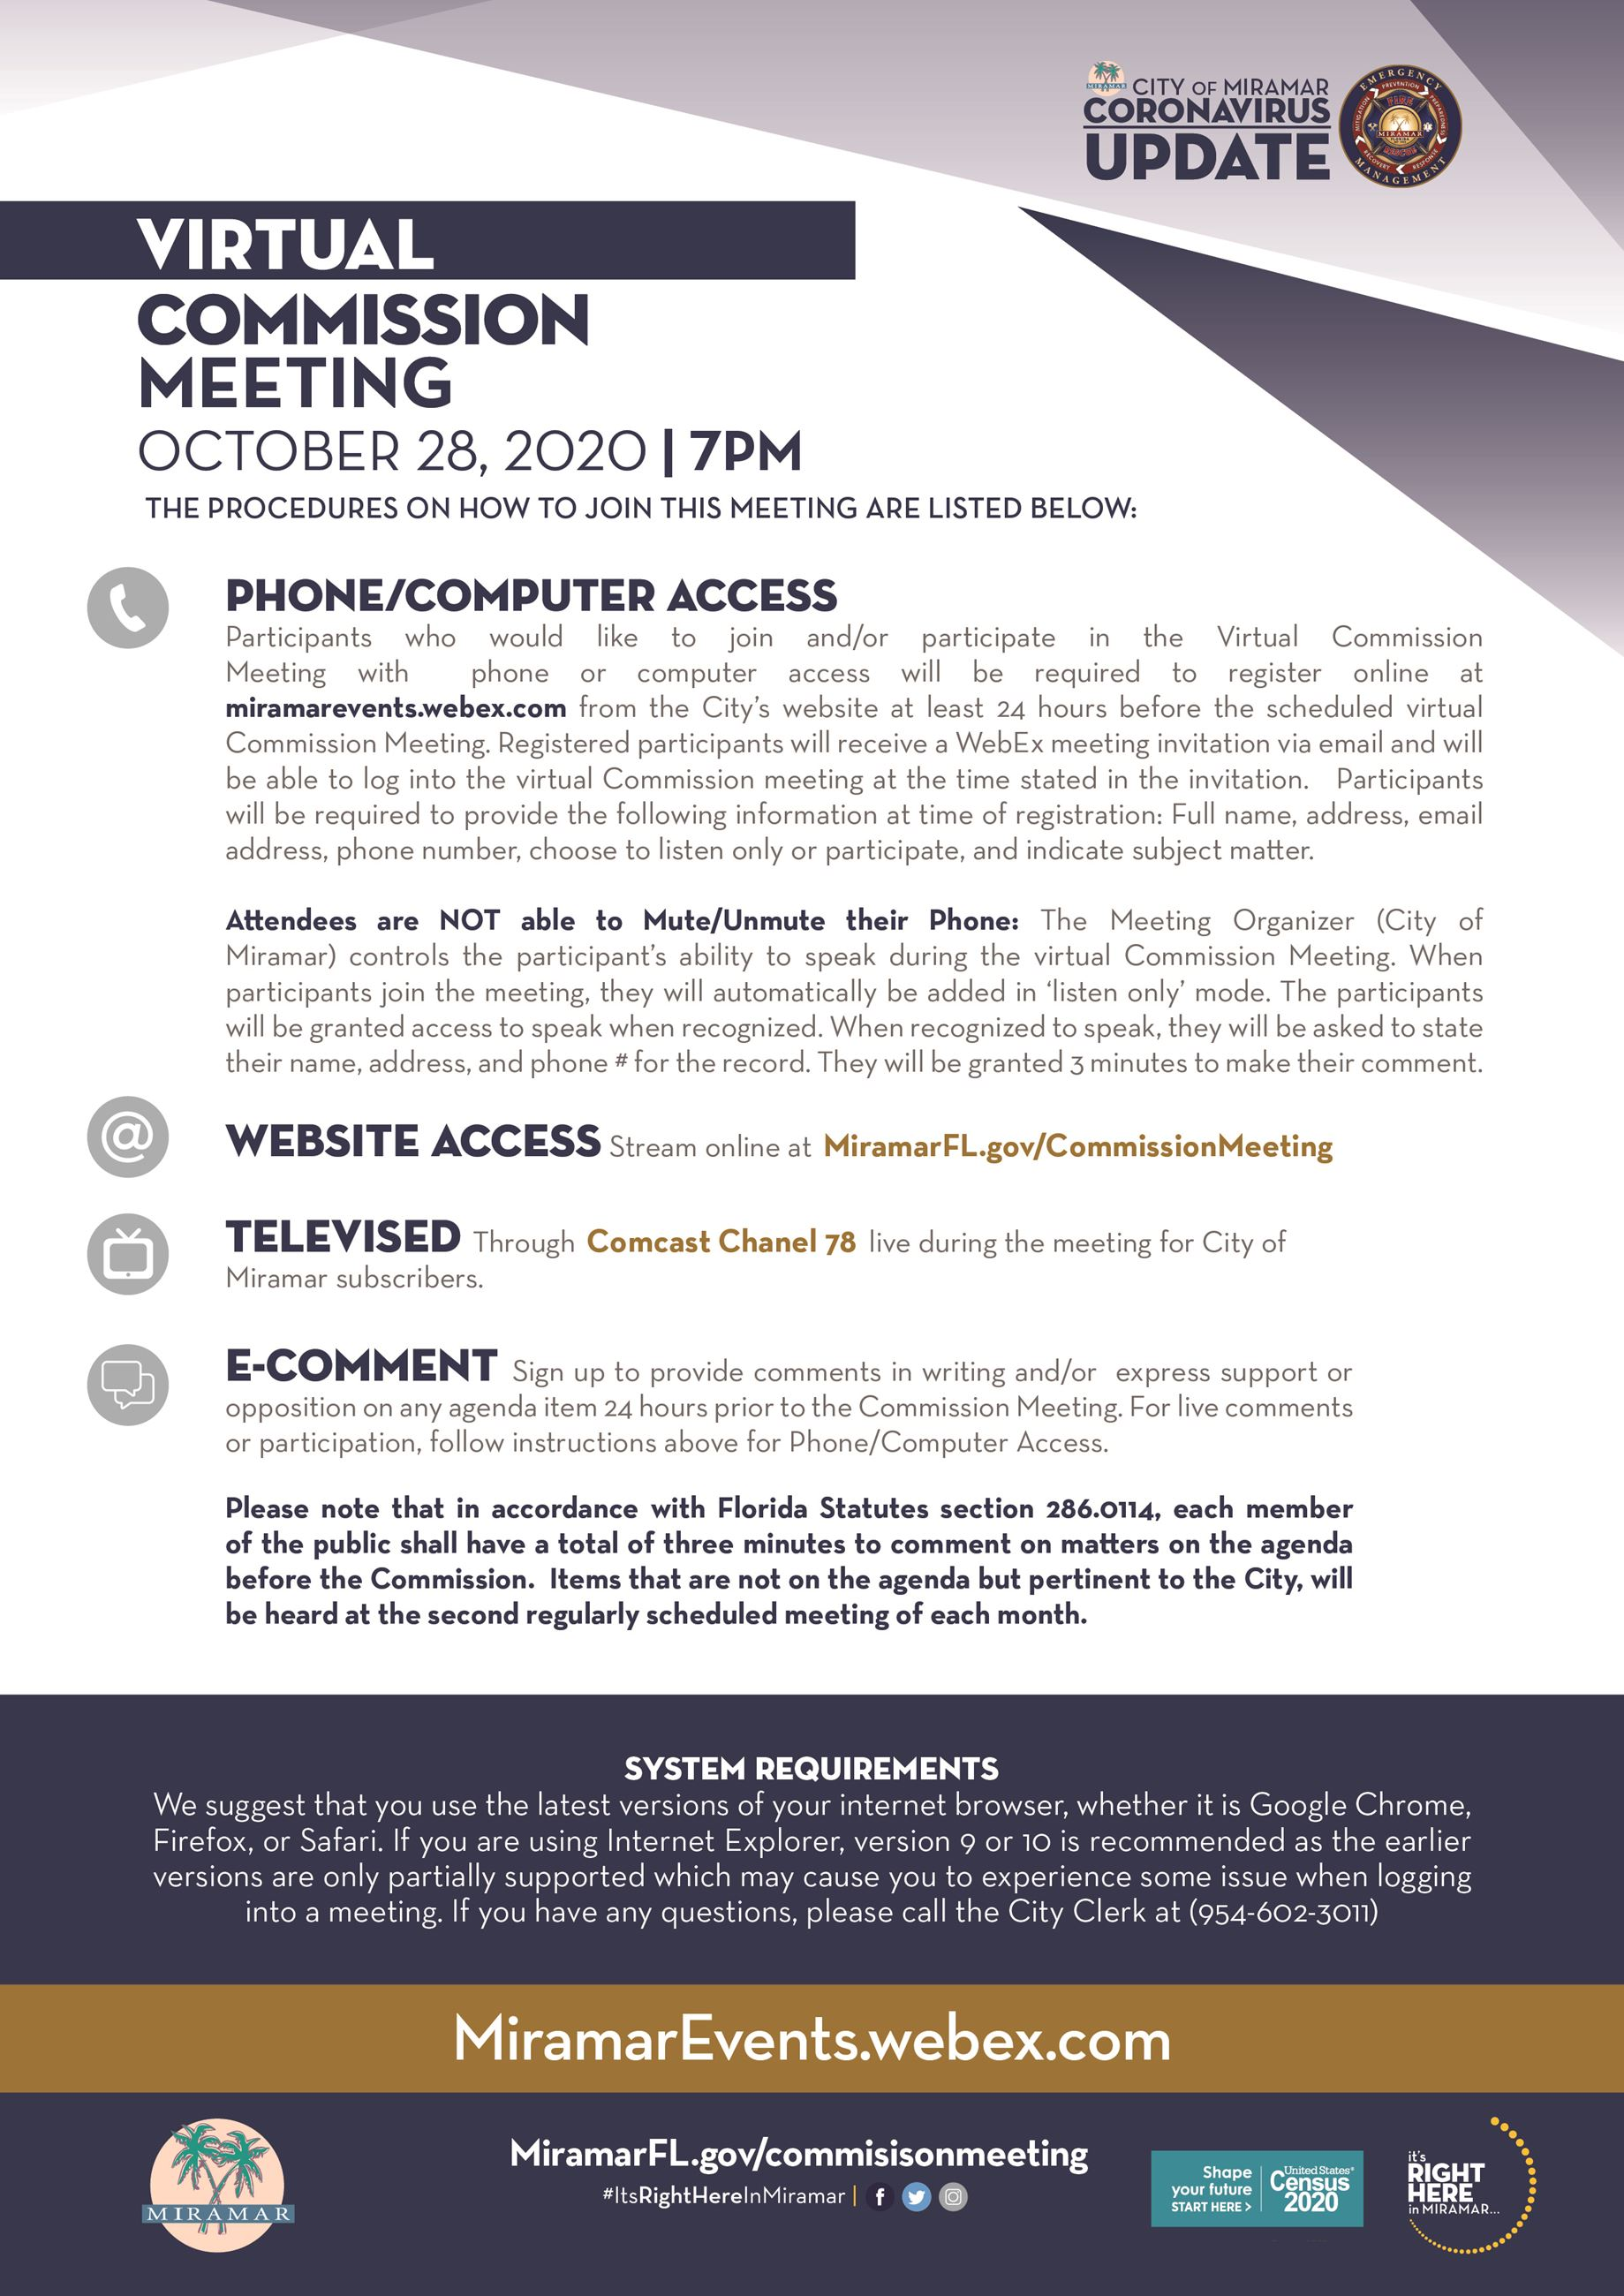 Virtual Commission Meeting Flyer - October 28